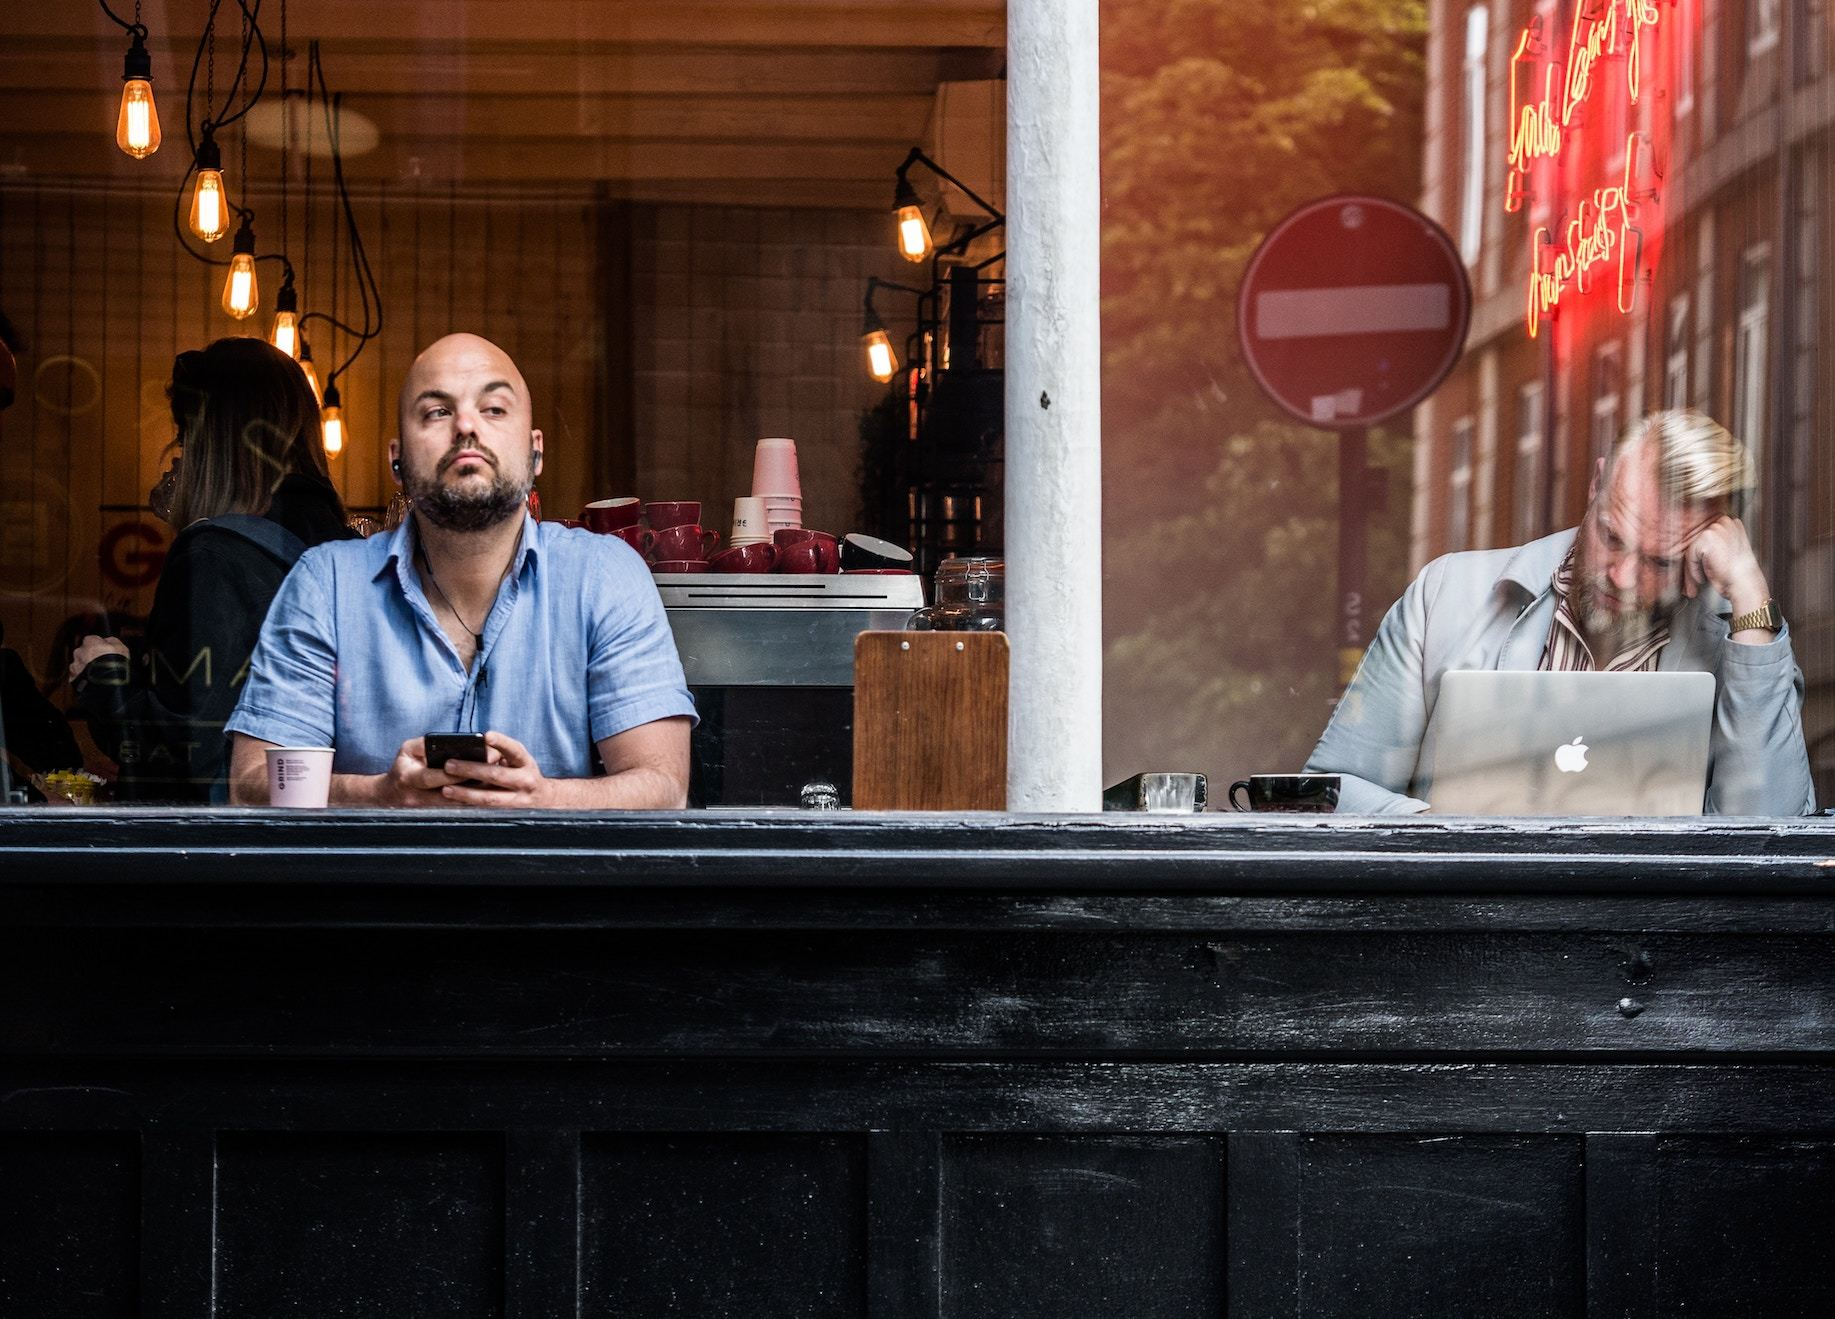 Two men at a cafe counter, one searches on laptop whiel the other looks out to the street